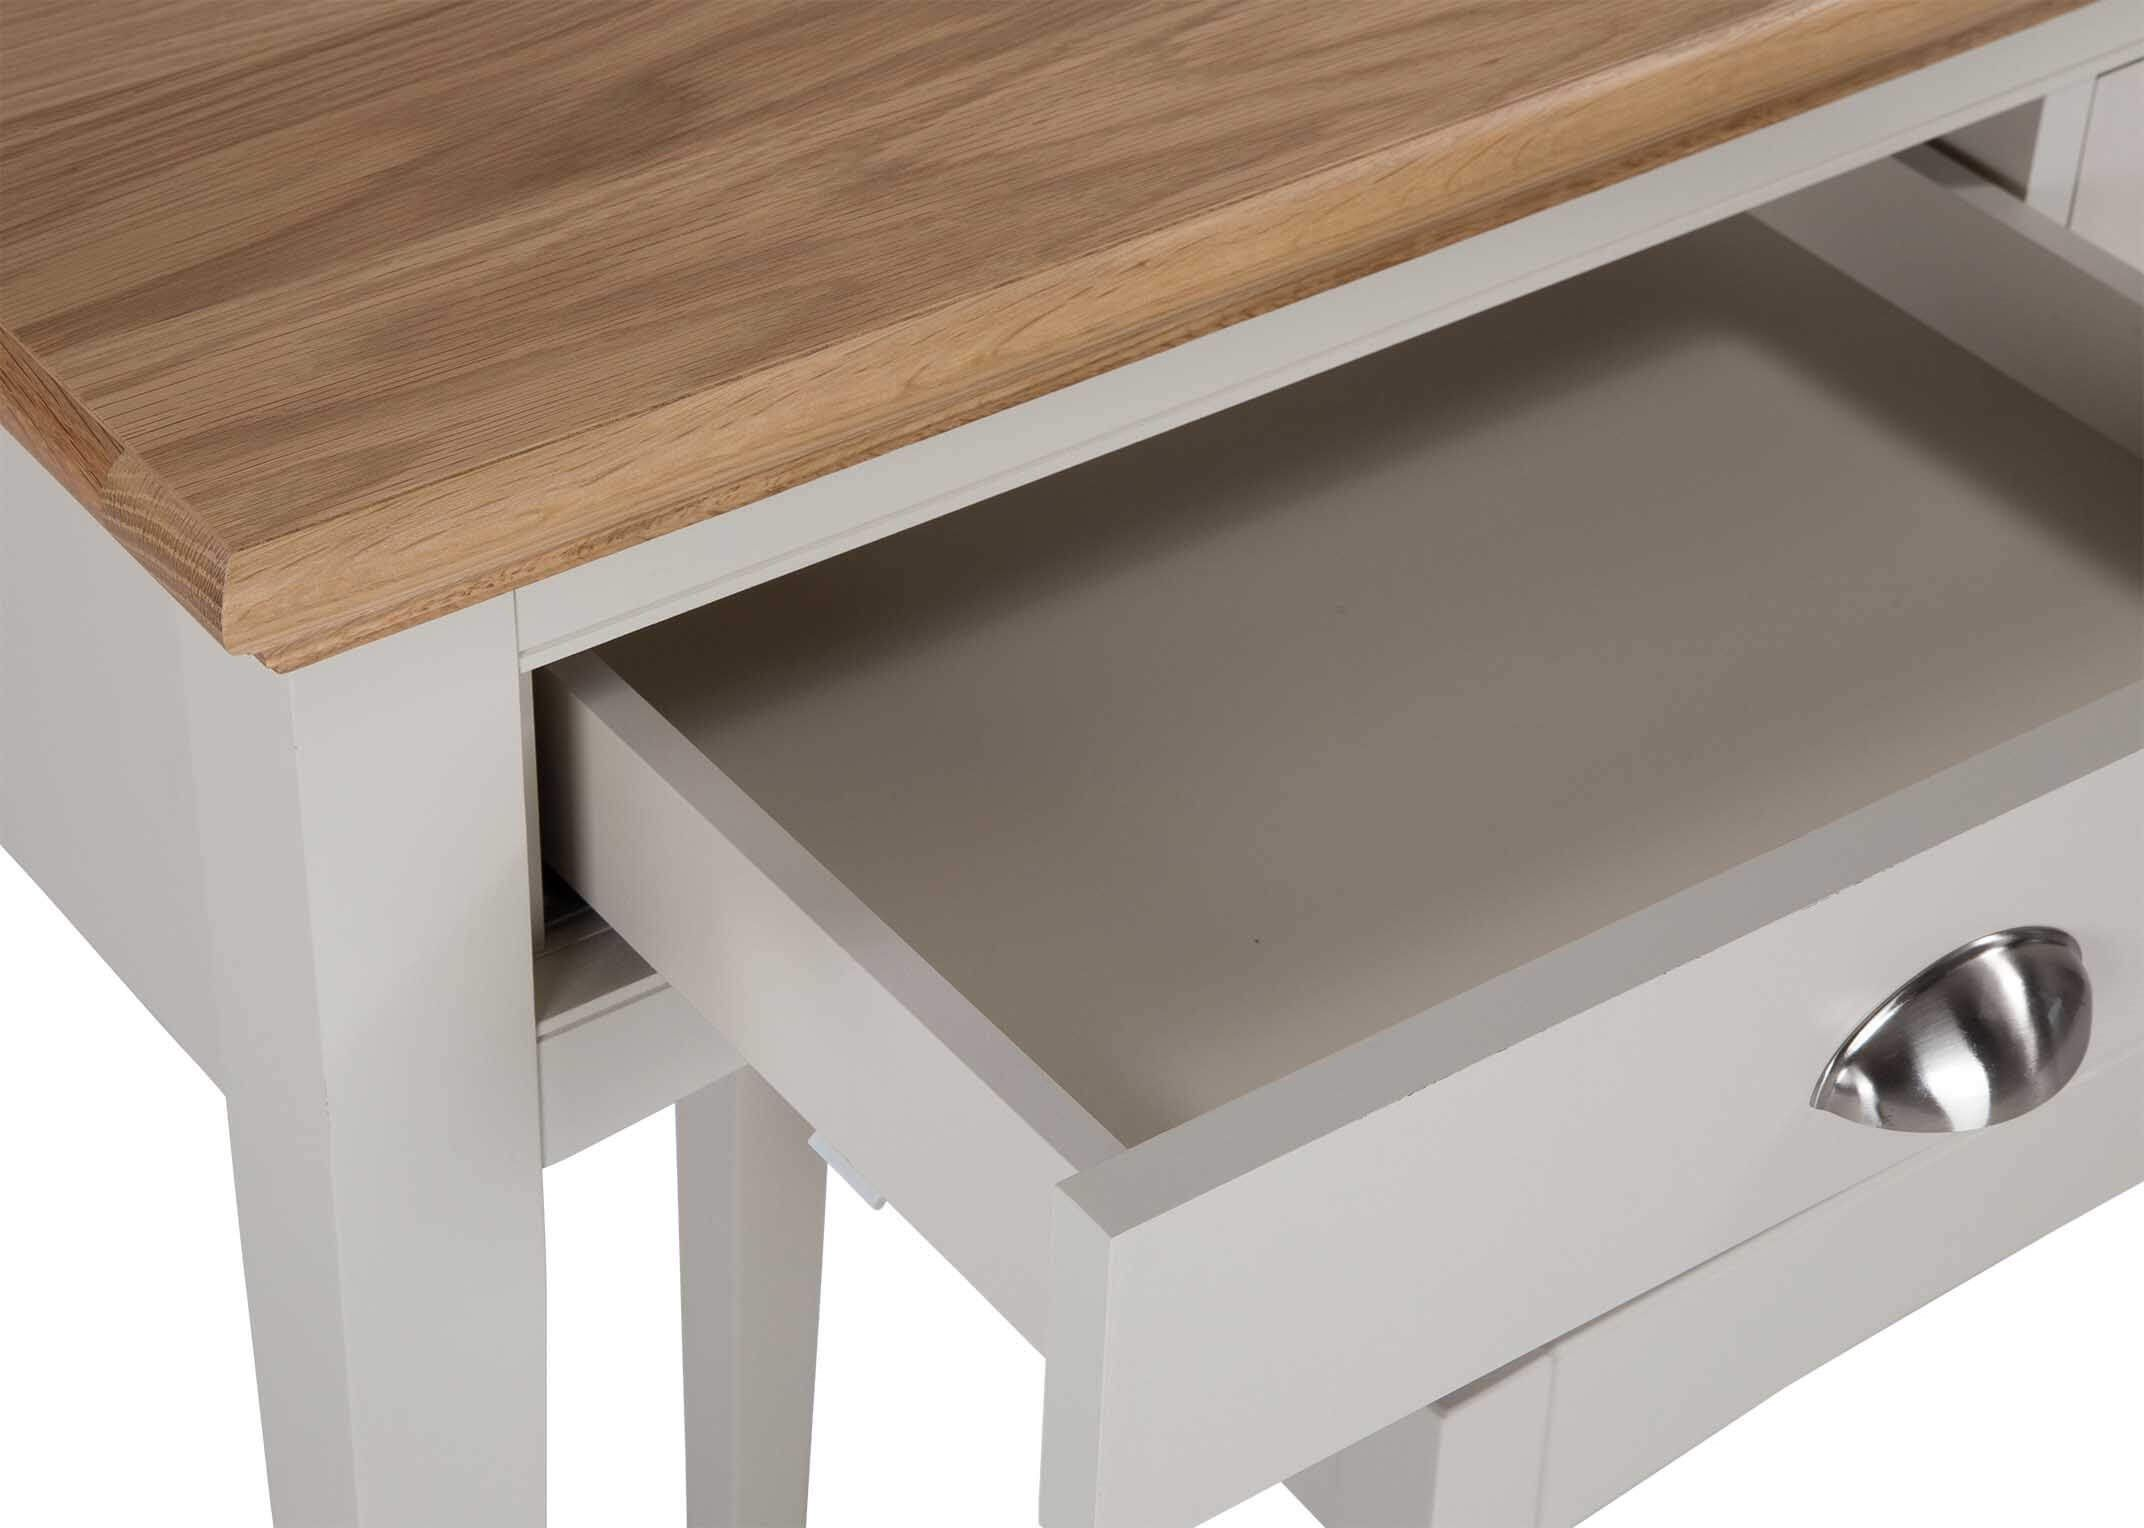 EASY CLOSING DRAWERS